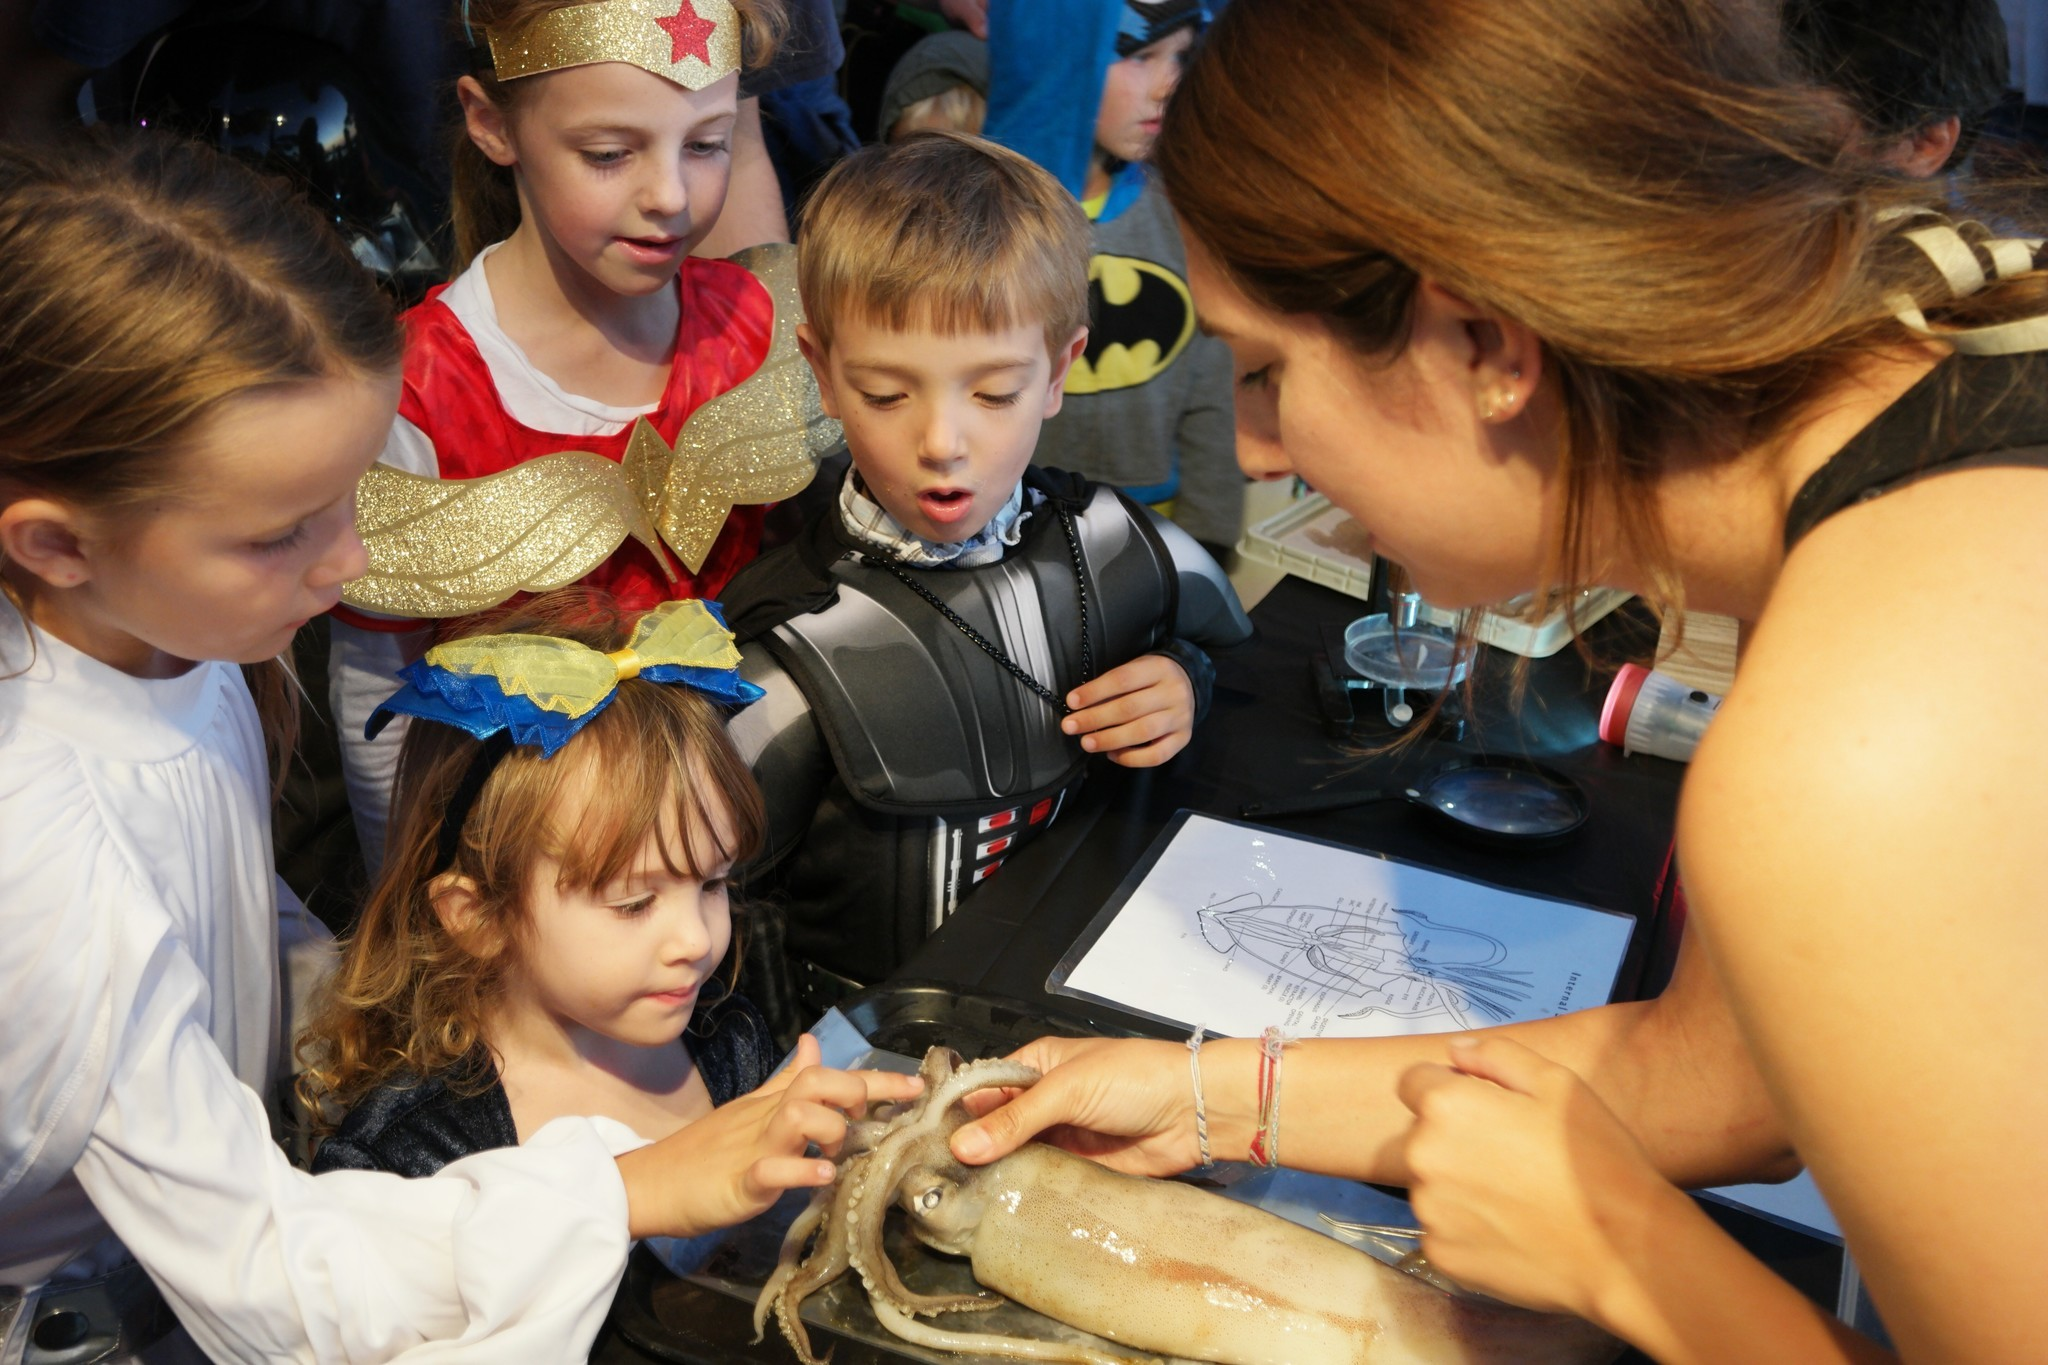 Get up close and personal with creatures from the deep at Birch Aquarium during the Haunted Aquarium event.